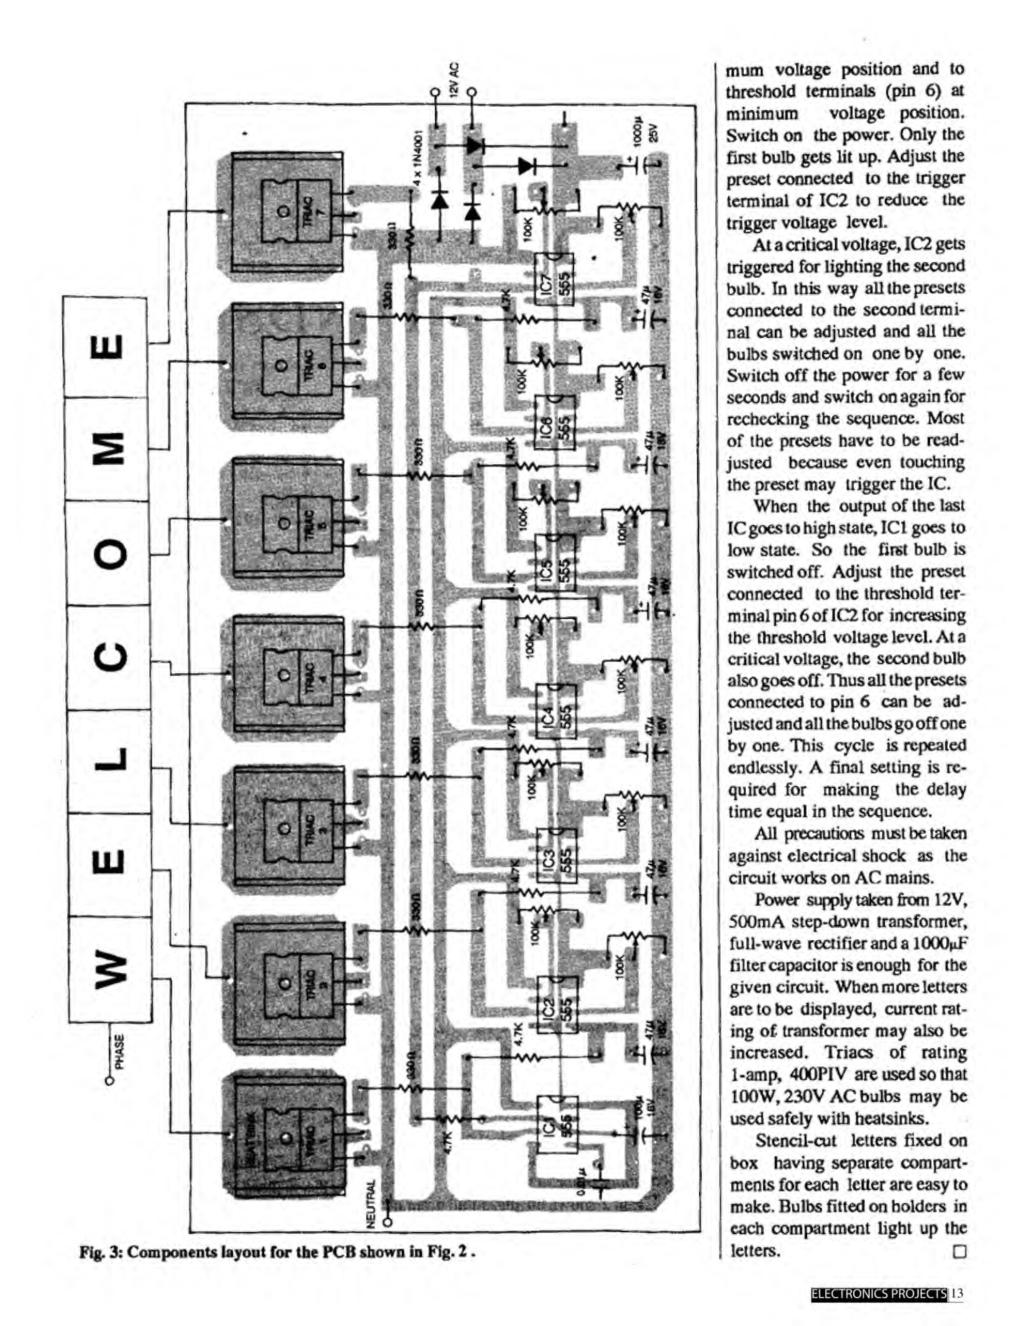 A Compilation Of 102 And Circuit Ideas For Construction Projects Fig 2 Triple Gang Way Light Switch Mum Voltage Position To Threshold Terminals Pin 6 At Minimum